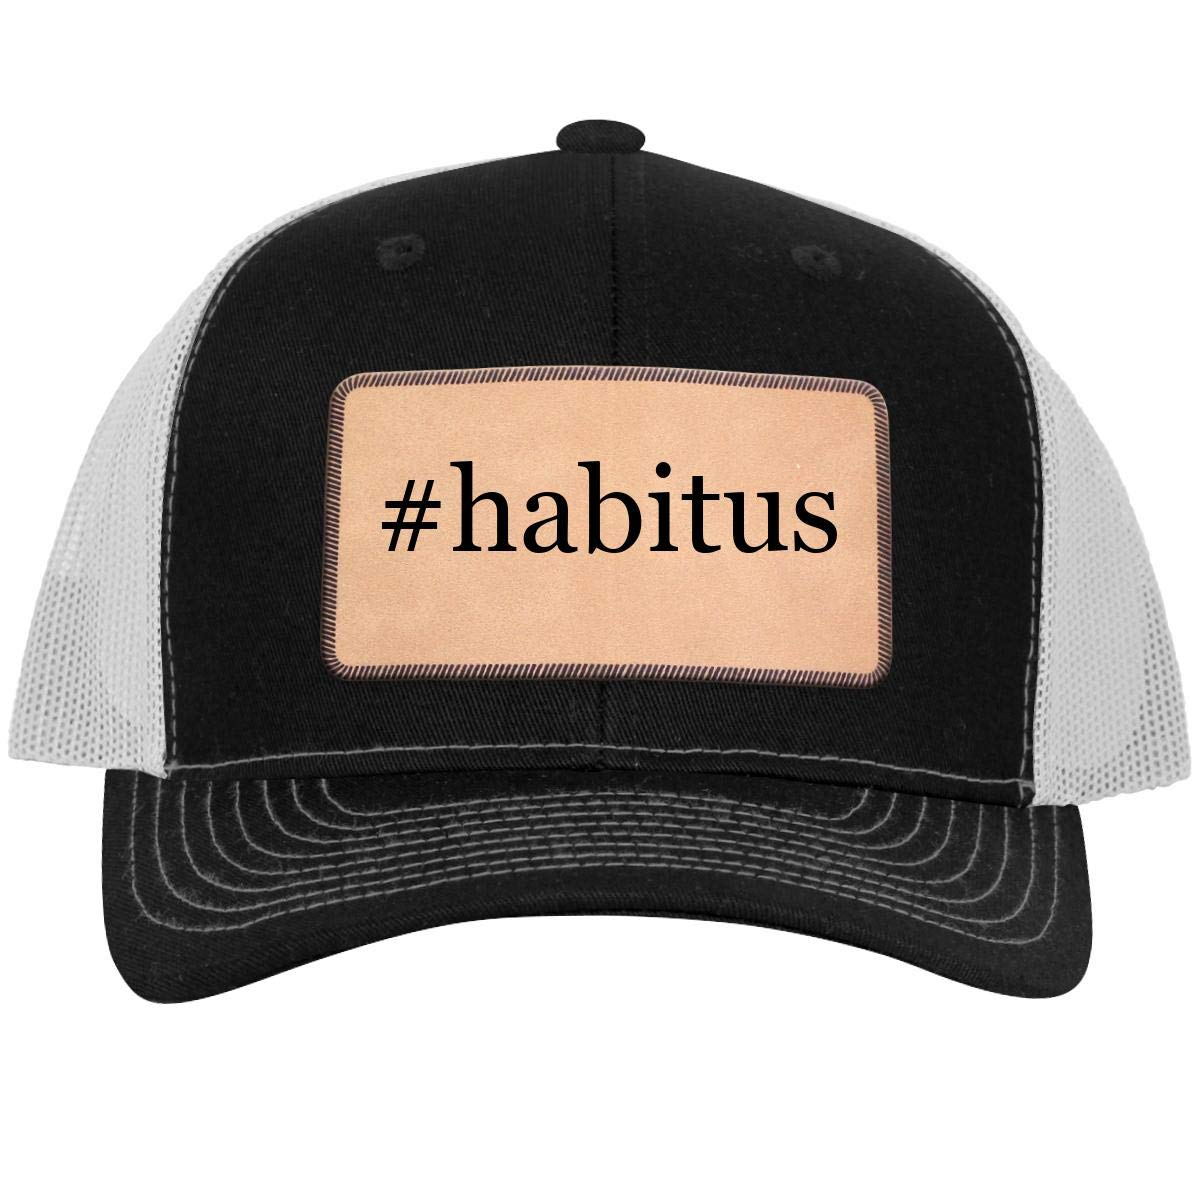 Leather Light Brown Patch Engraved Trucker Hat One Legging it Around Tiddy Beer Weird Provisos